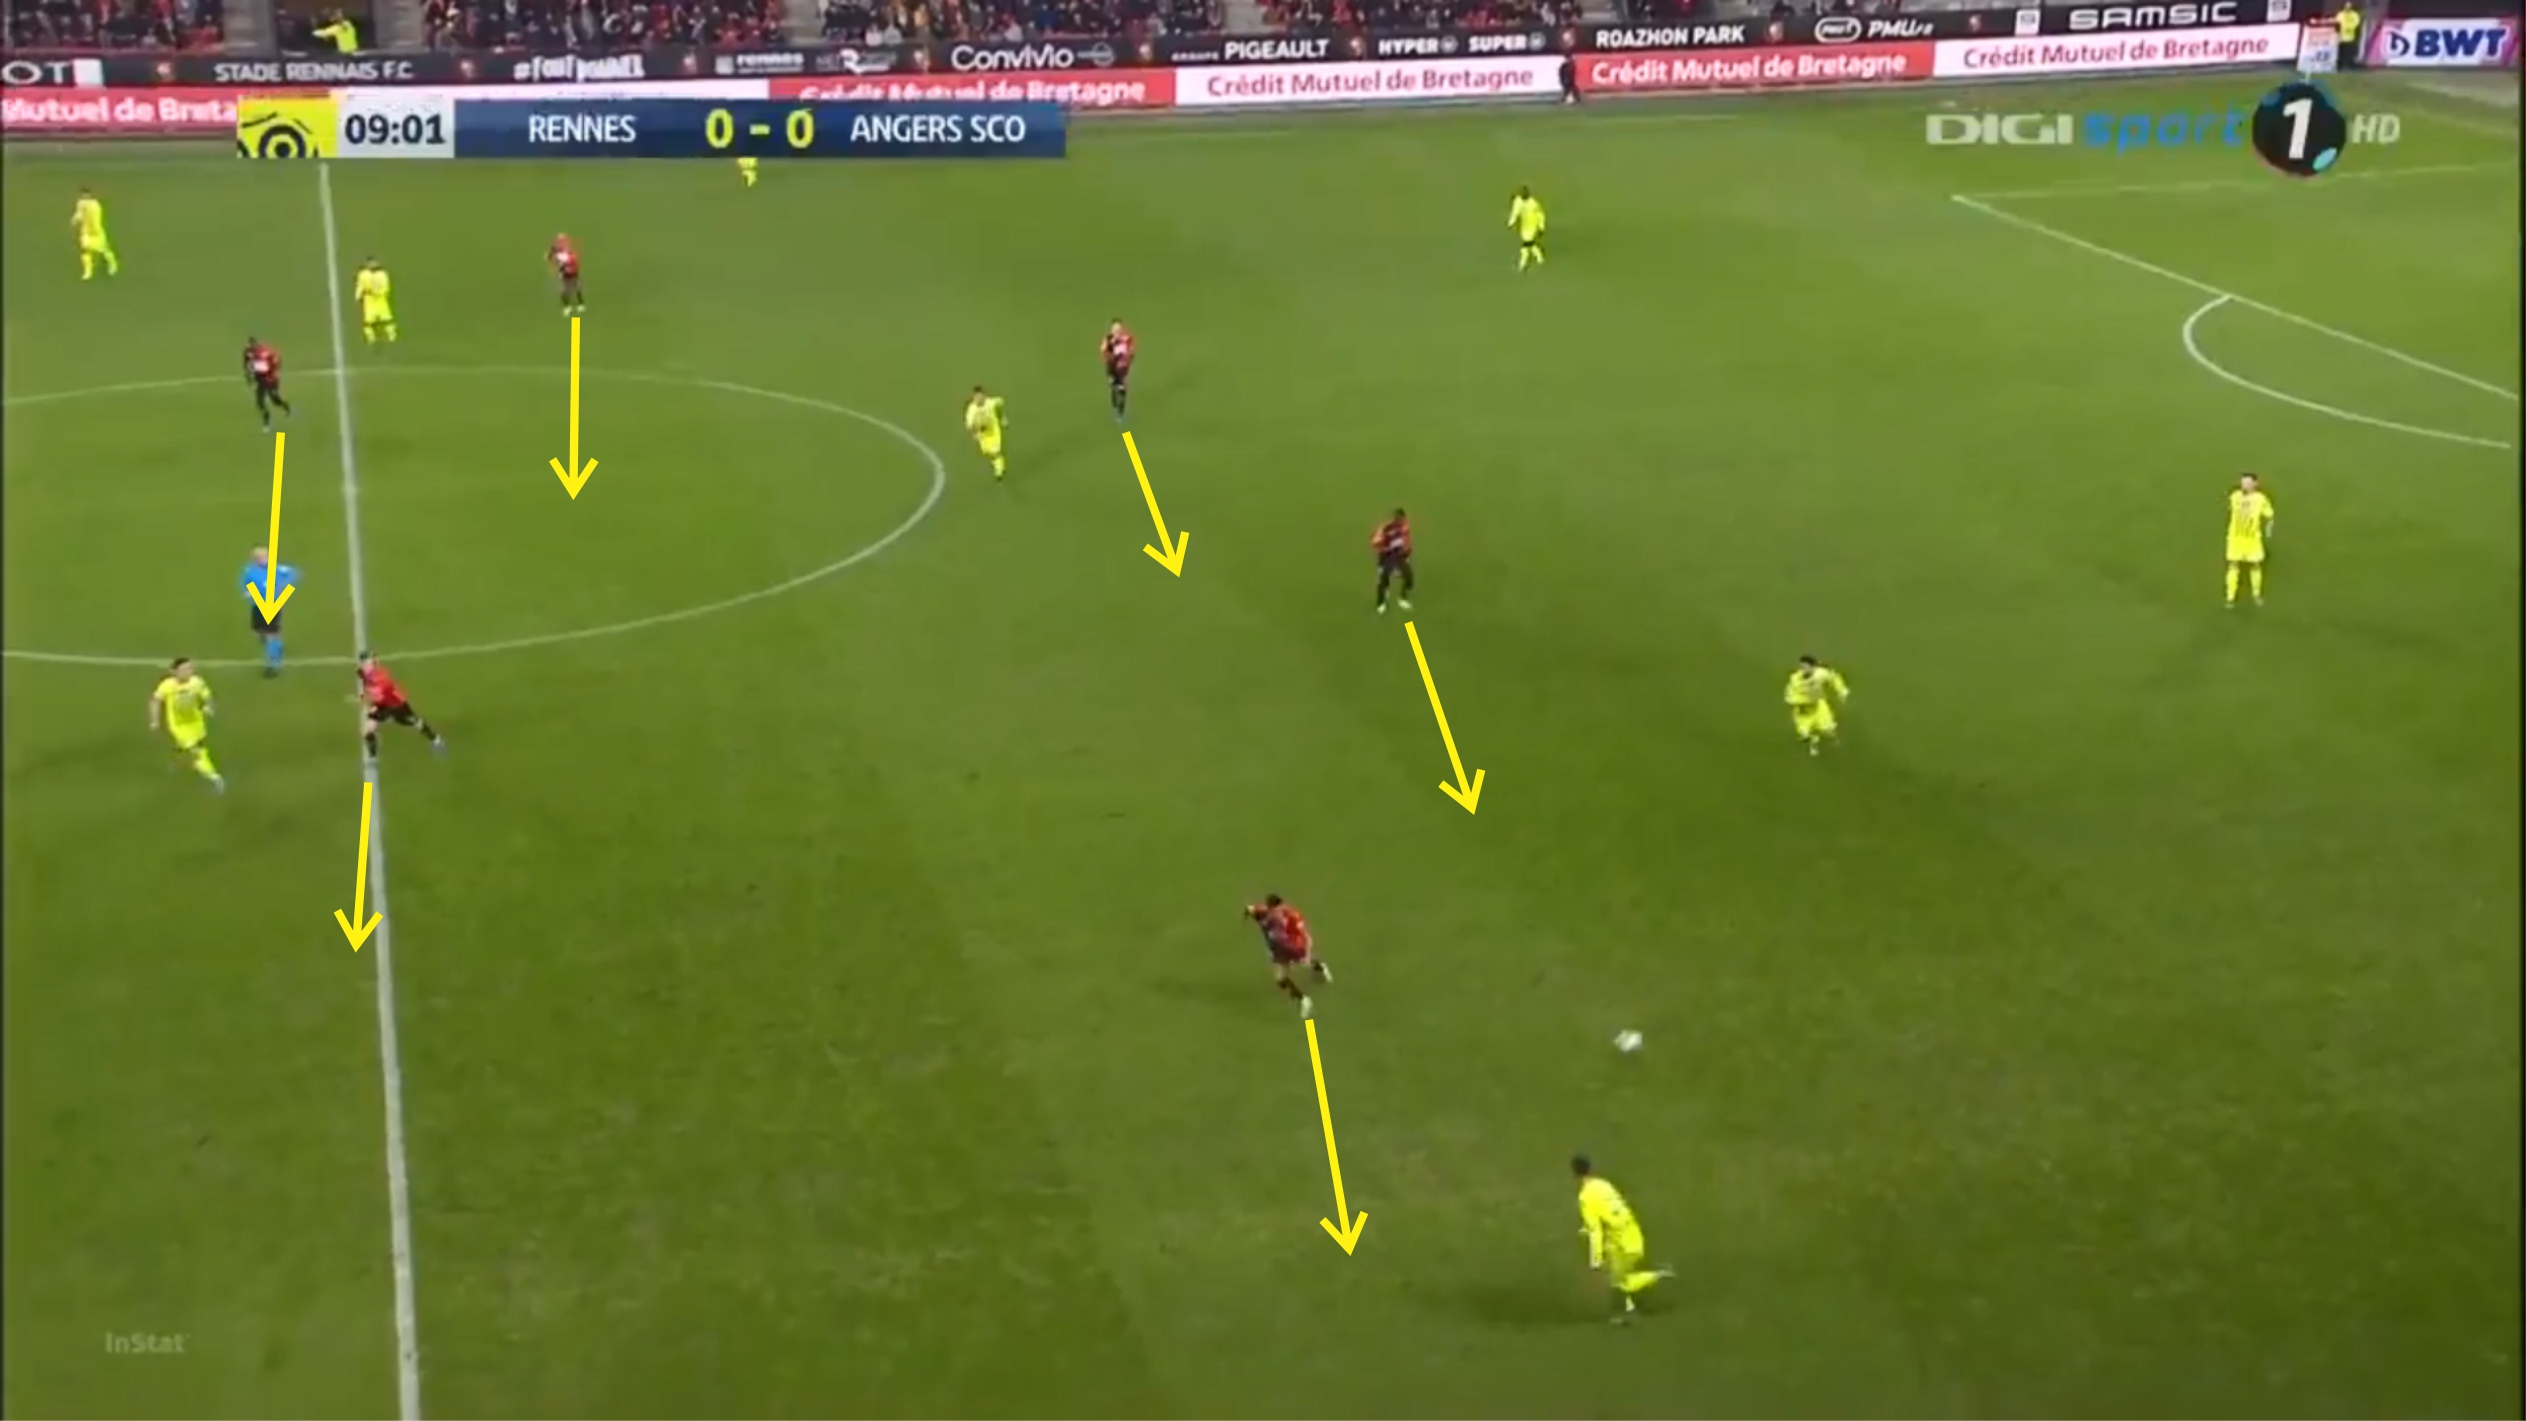 Ligue 1 2019/20: Rennes vs Angers - tactical analysis - tactics